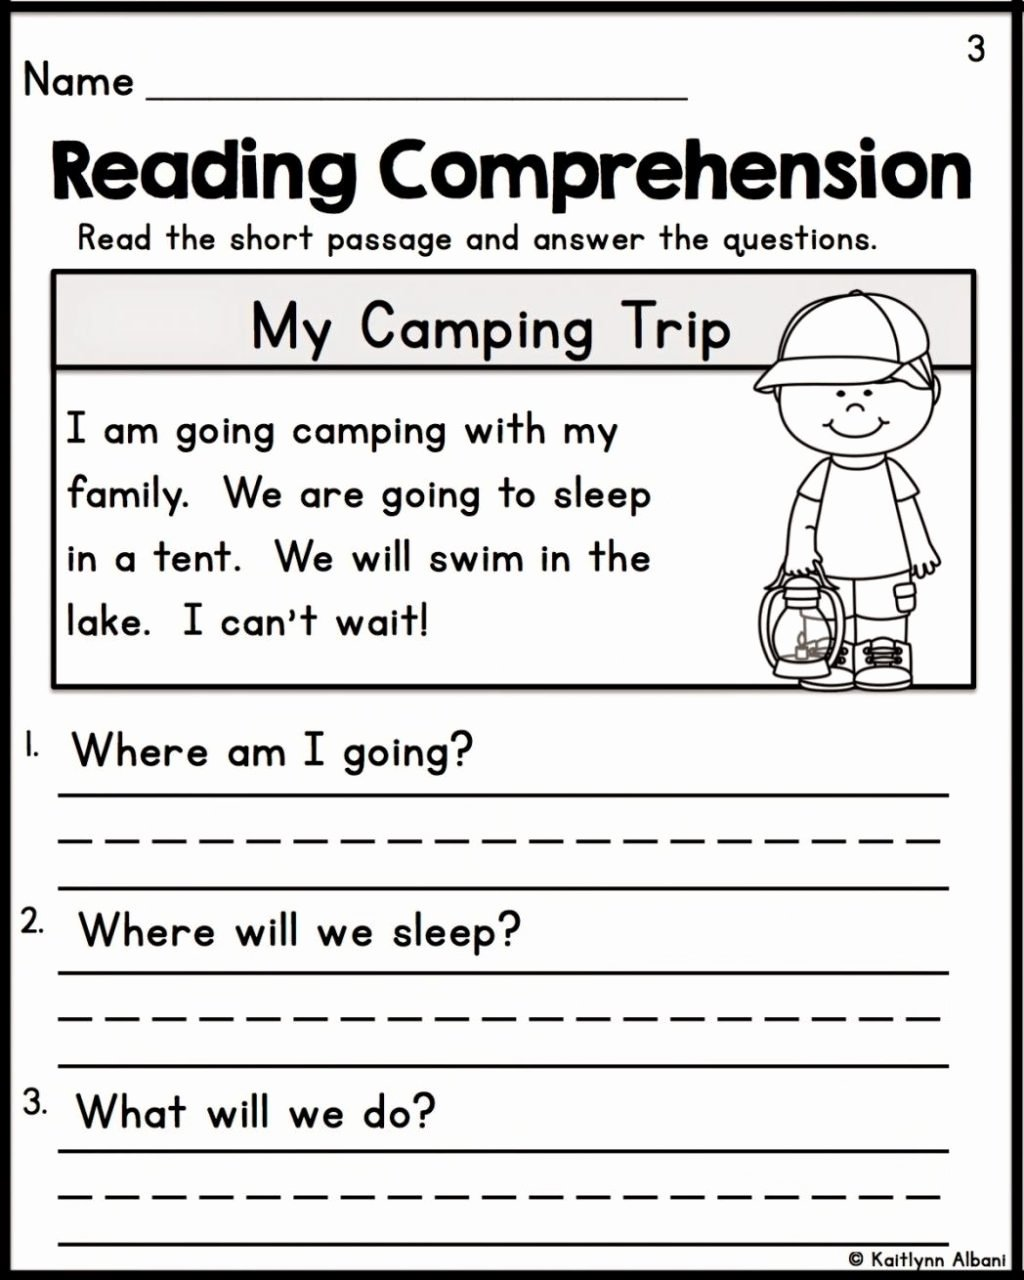 Worksheets for Preschoolers Reading Best Of Worksheet Reading Worksheets for Pre K Kindergarten